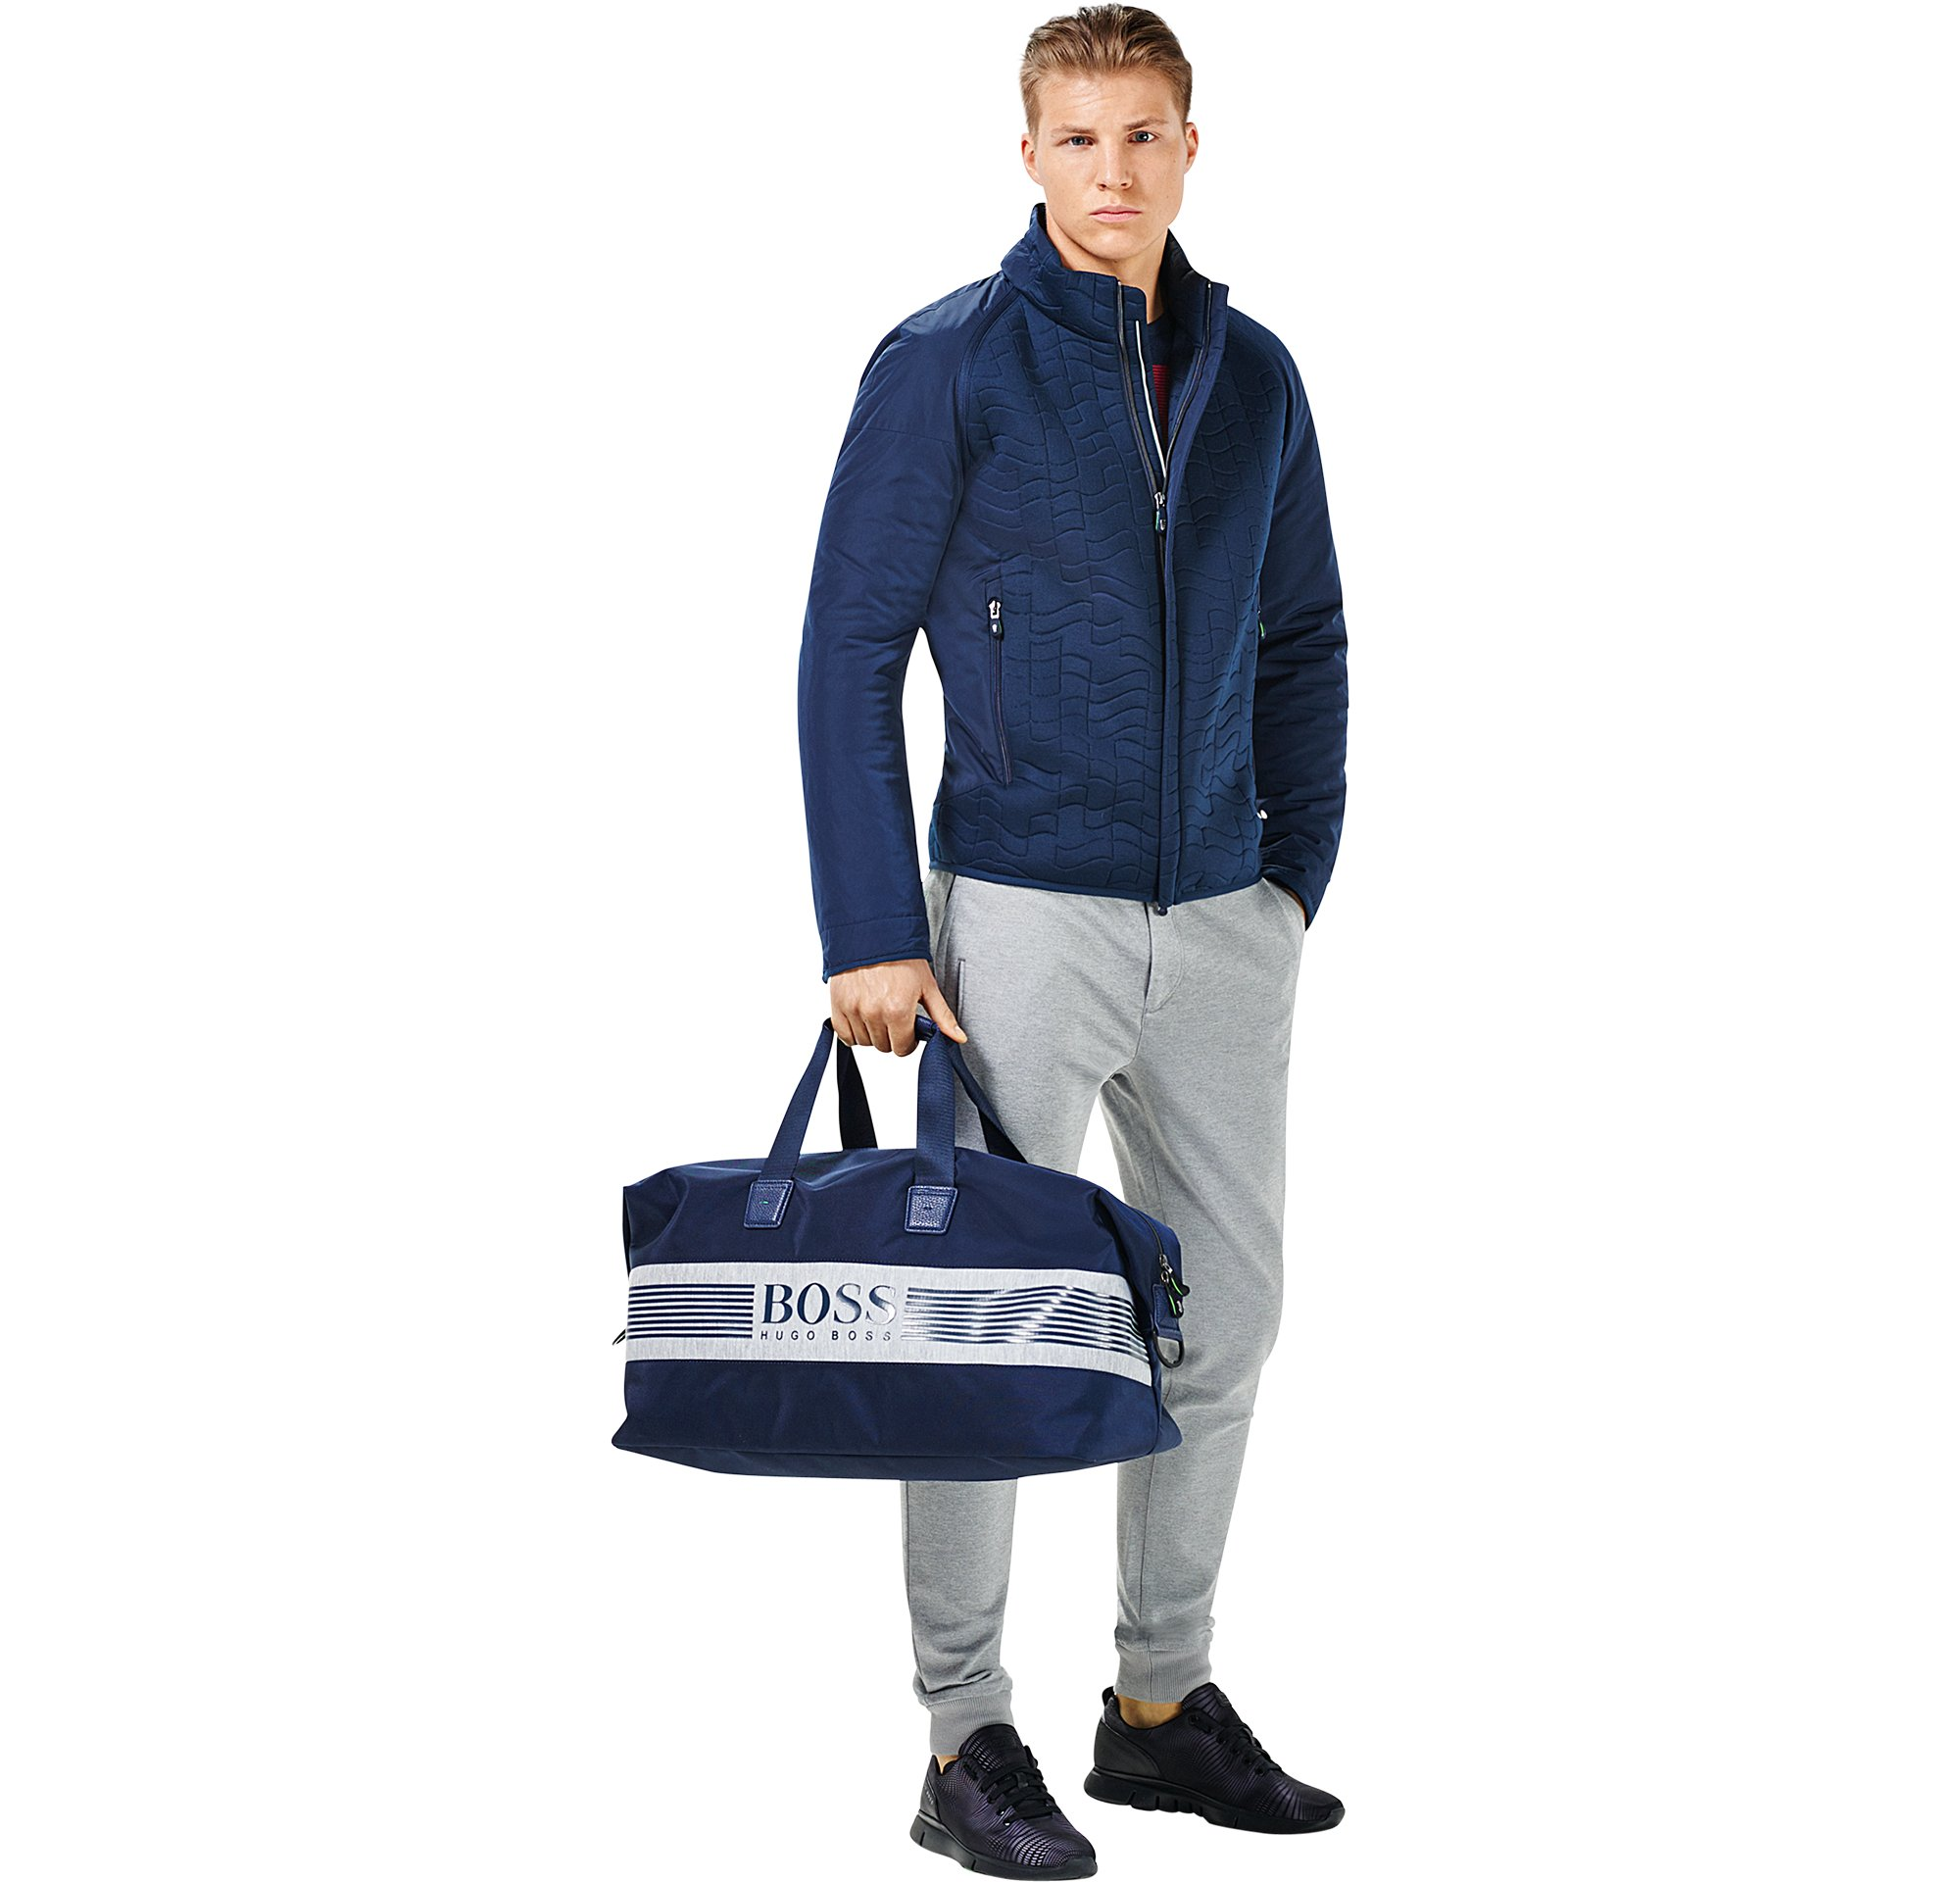 Outerwear, knitwear, trousers, shoes and bag by BOSS Green Menswear